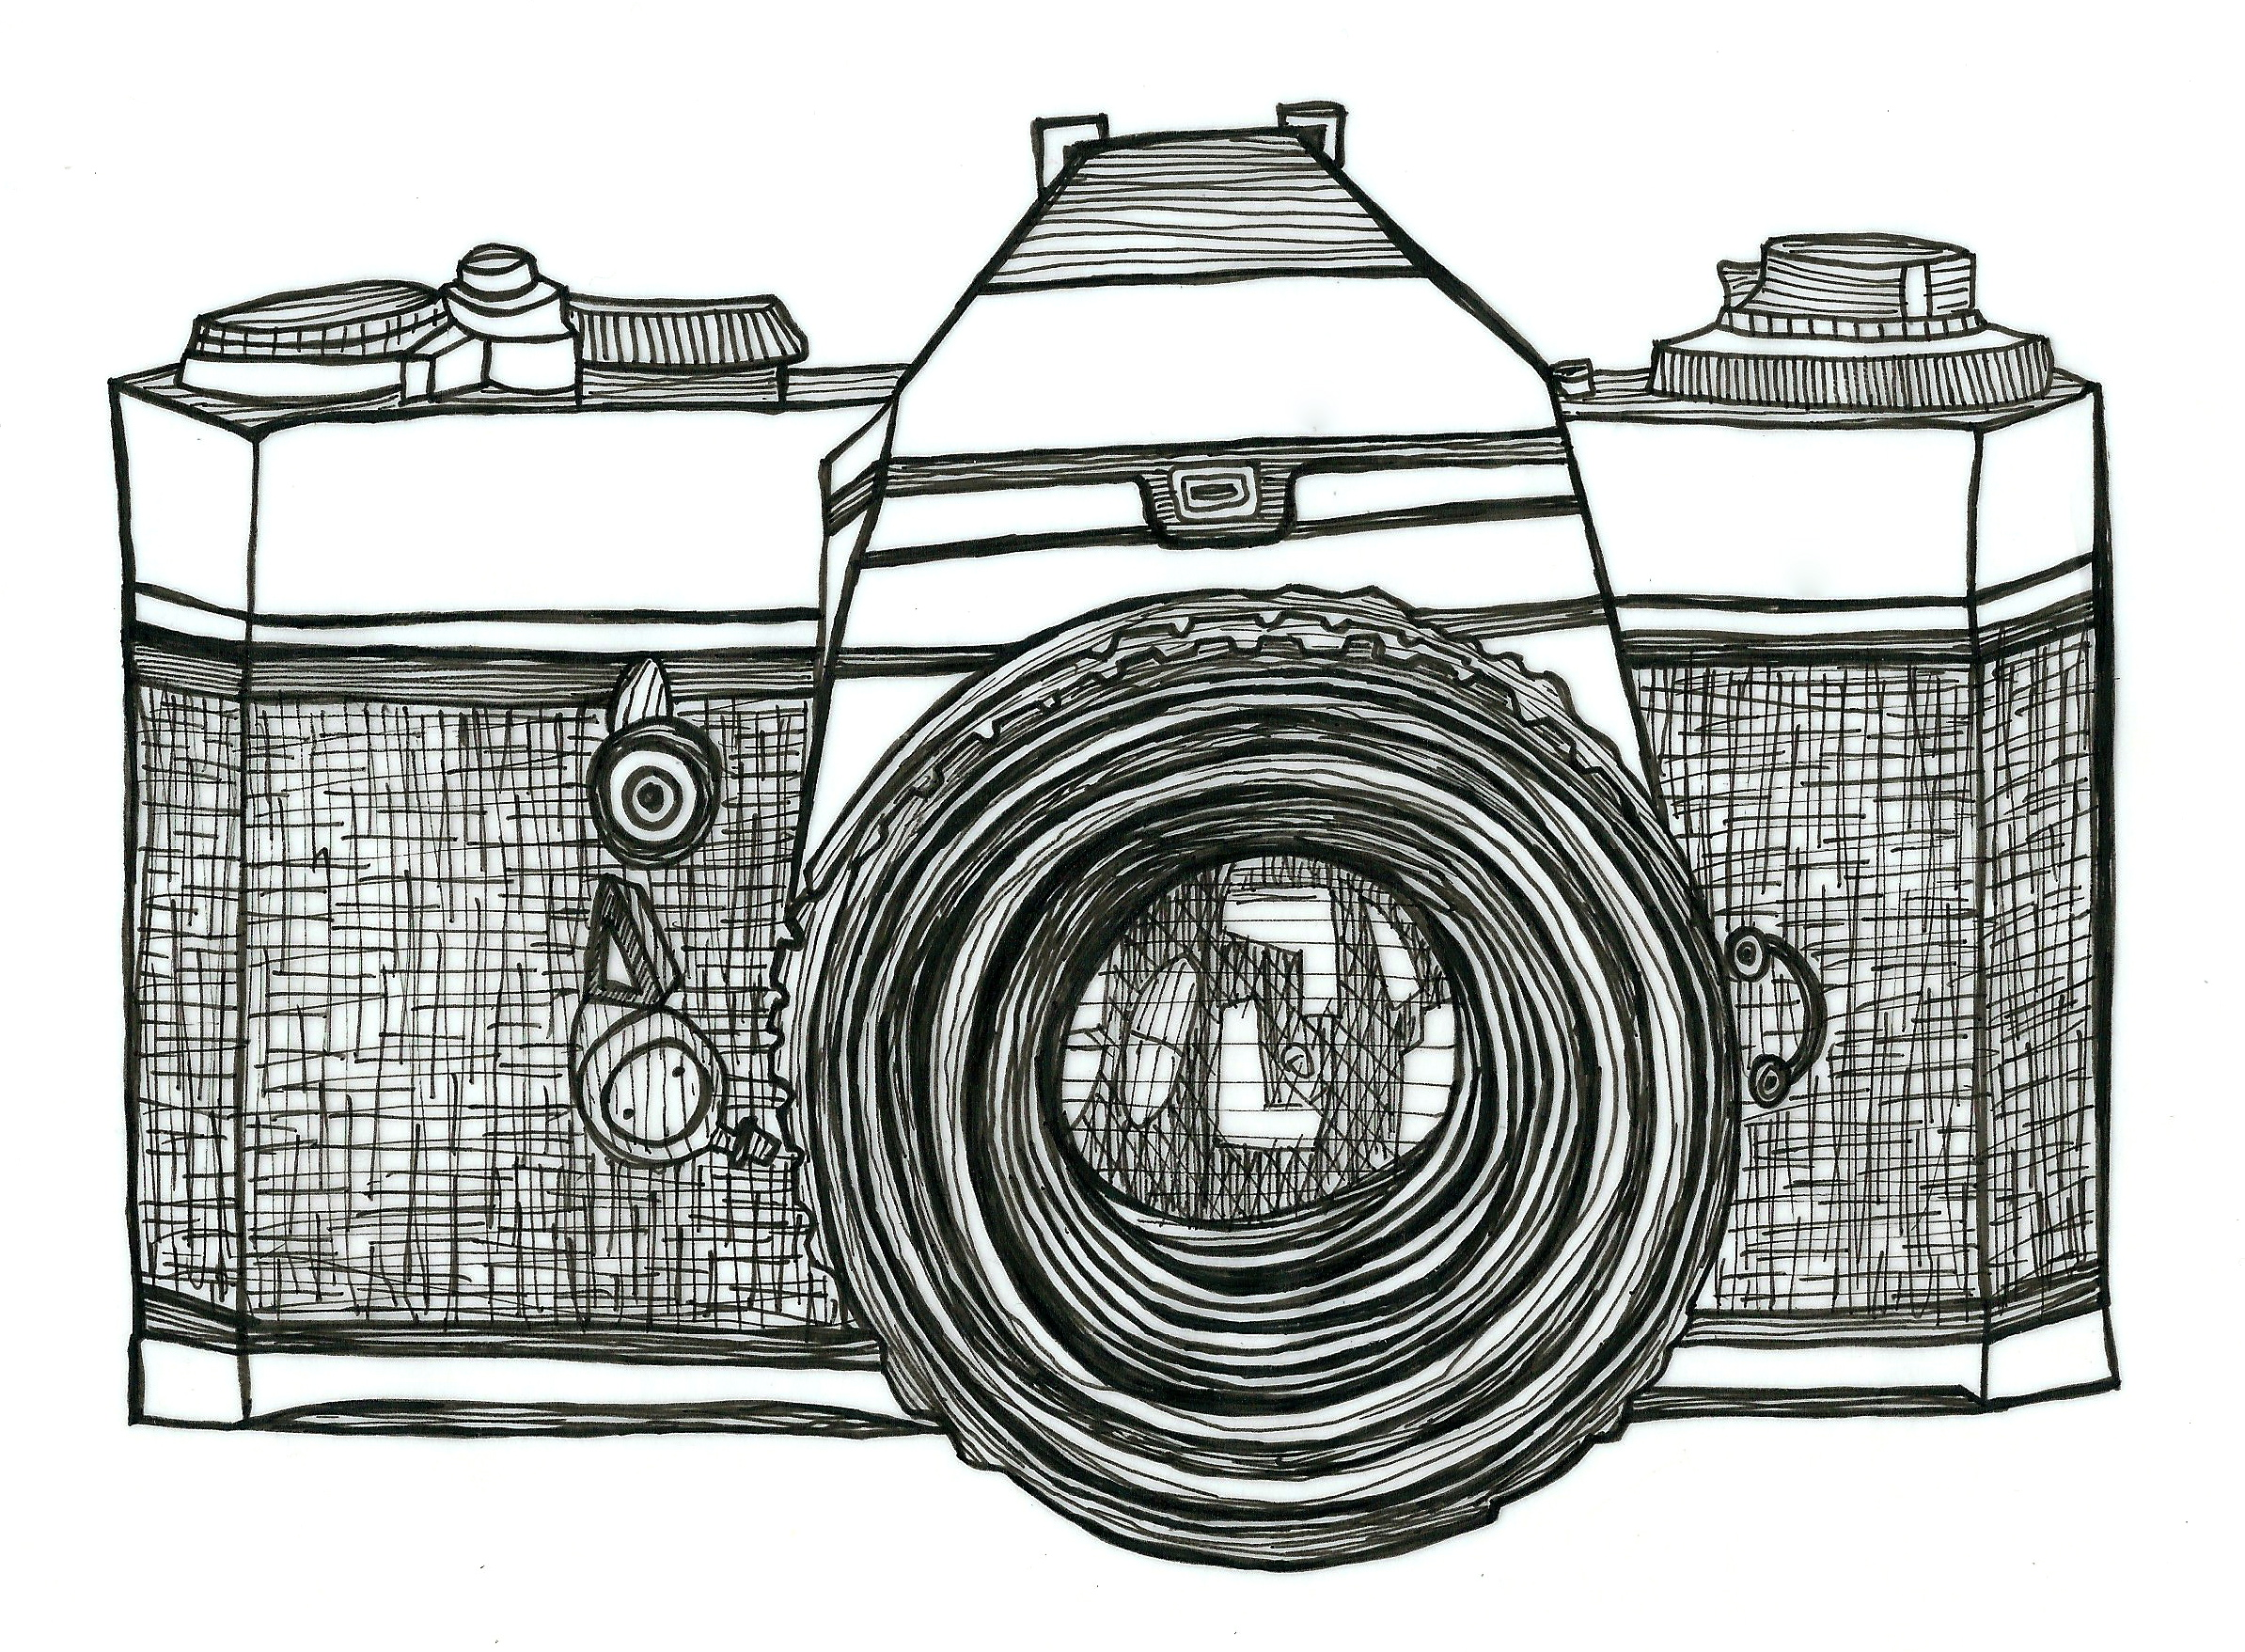 Drawn camera Pinterest File camera drawing camera